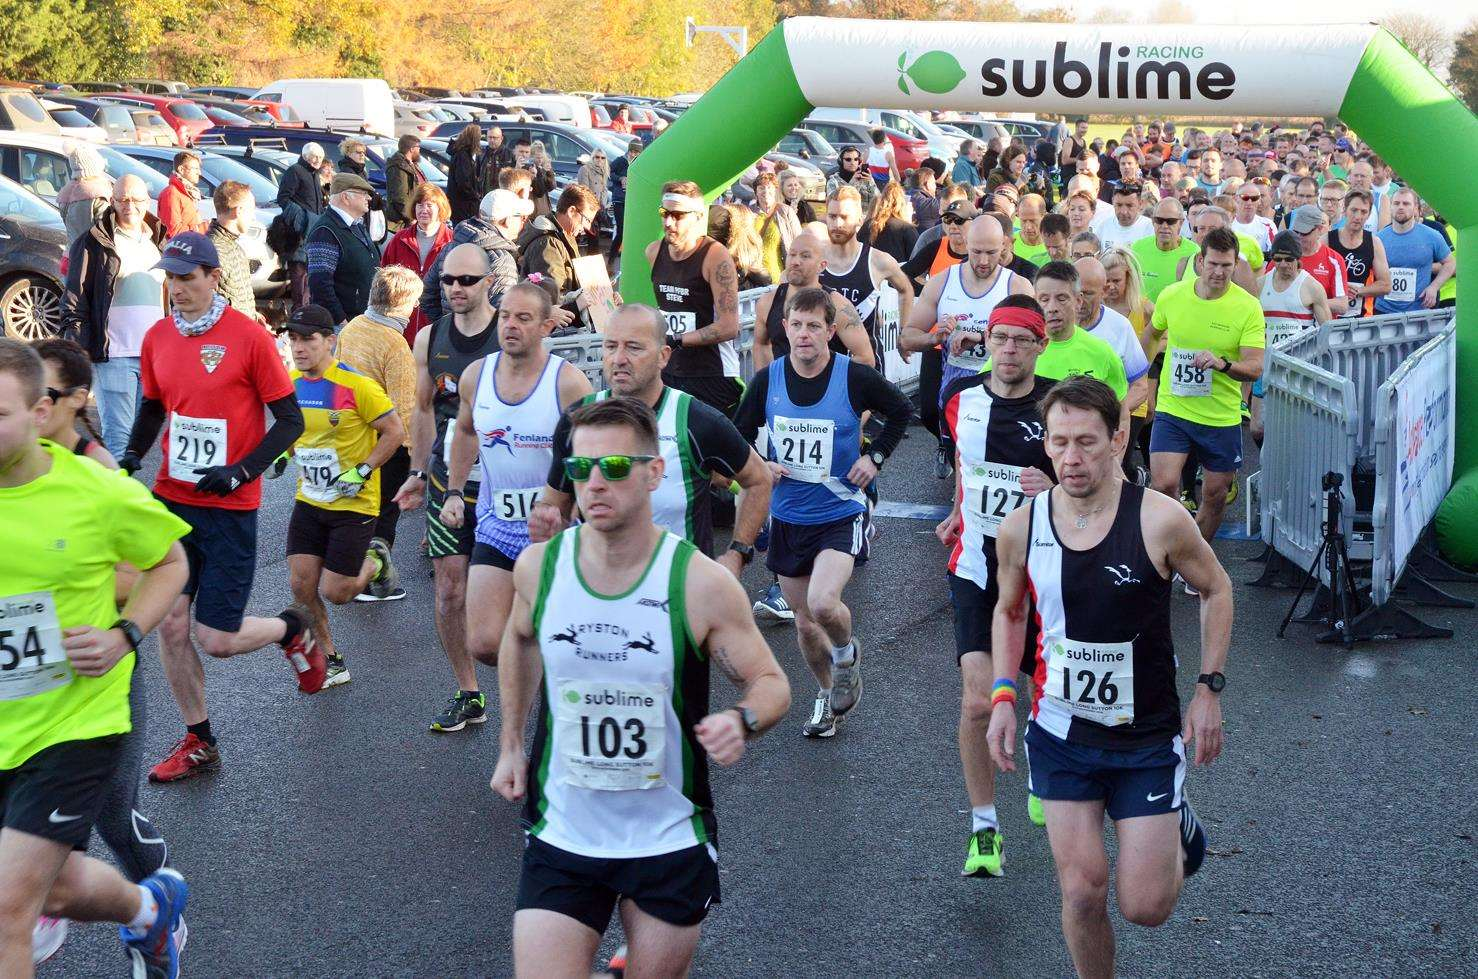 Sublime Long Sutton 10k